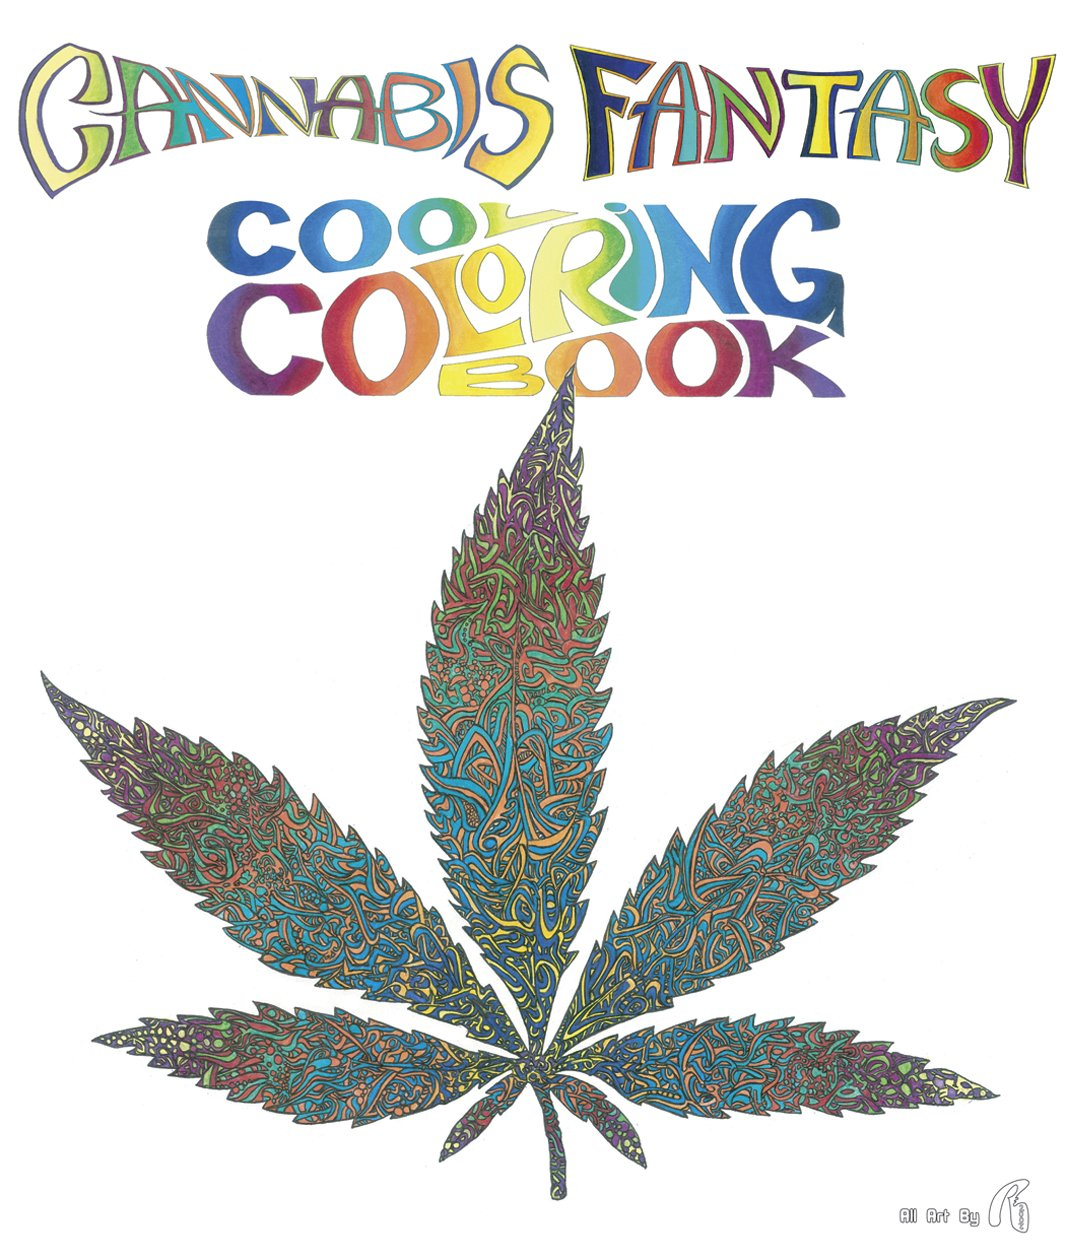 Amazon.com: Cannabis Fantasy Cool Coloring Book (9780867197174): Re ...